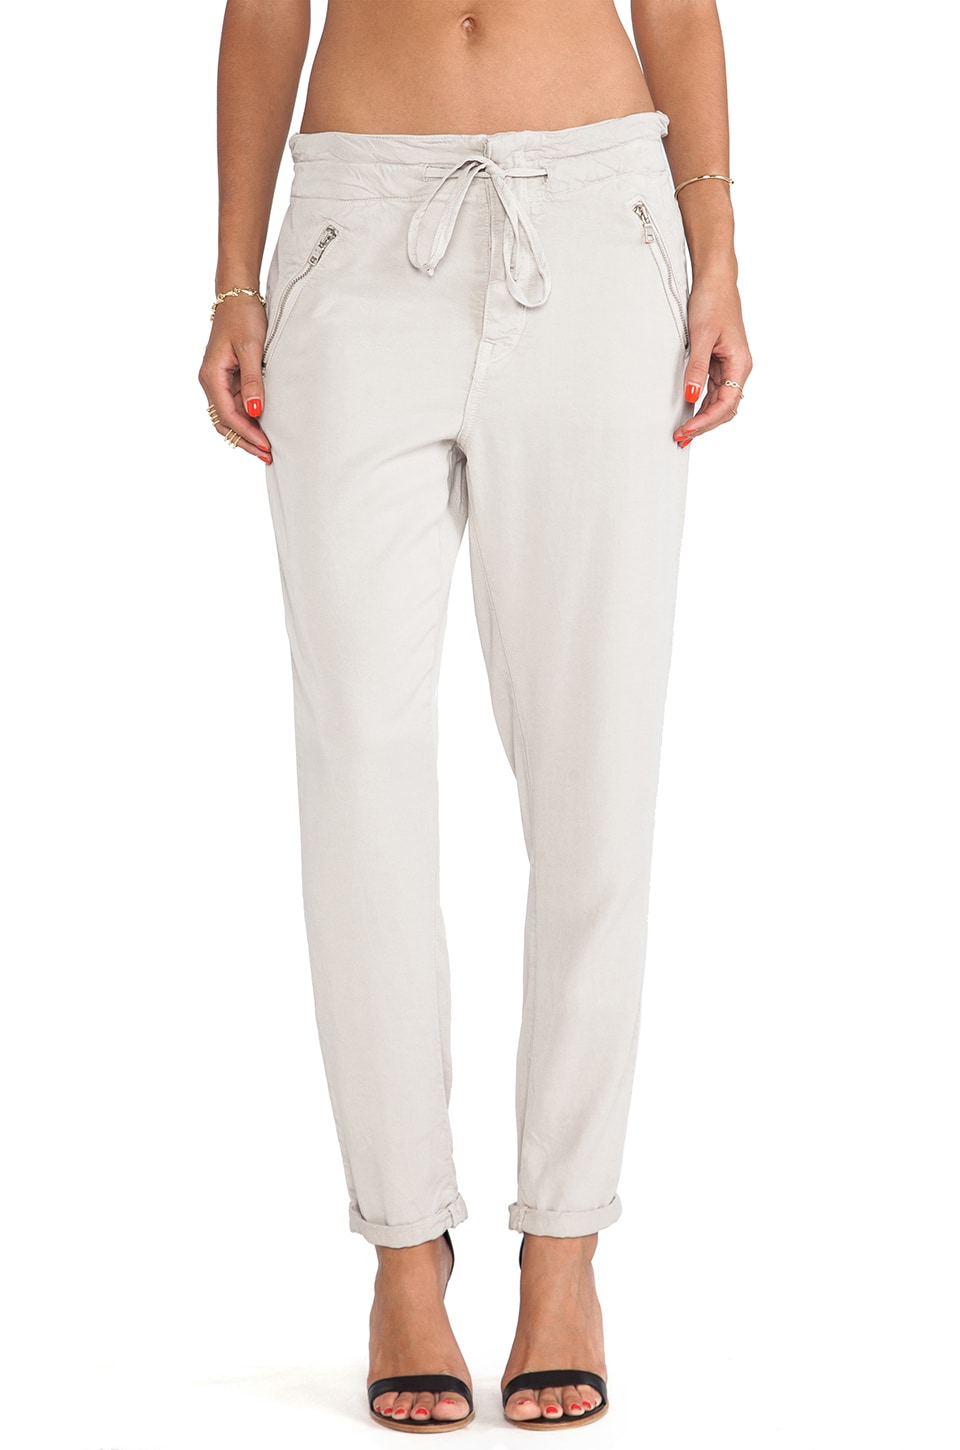 DWP Cameron Paper Bag Pant in Oyster